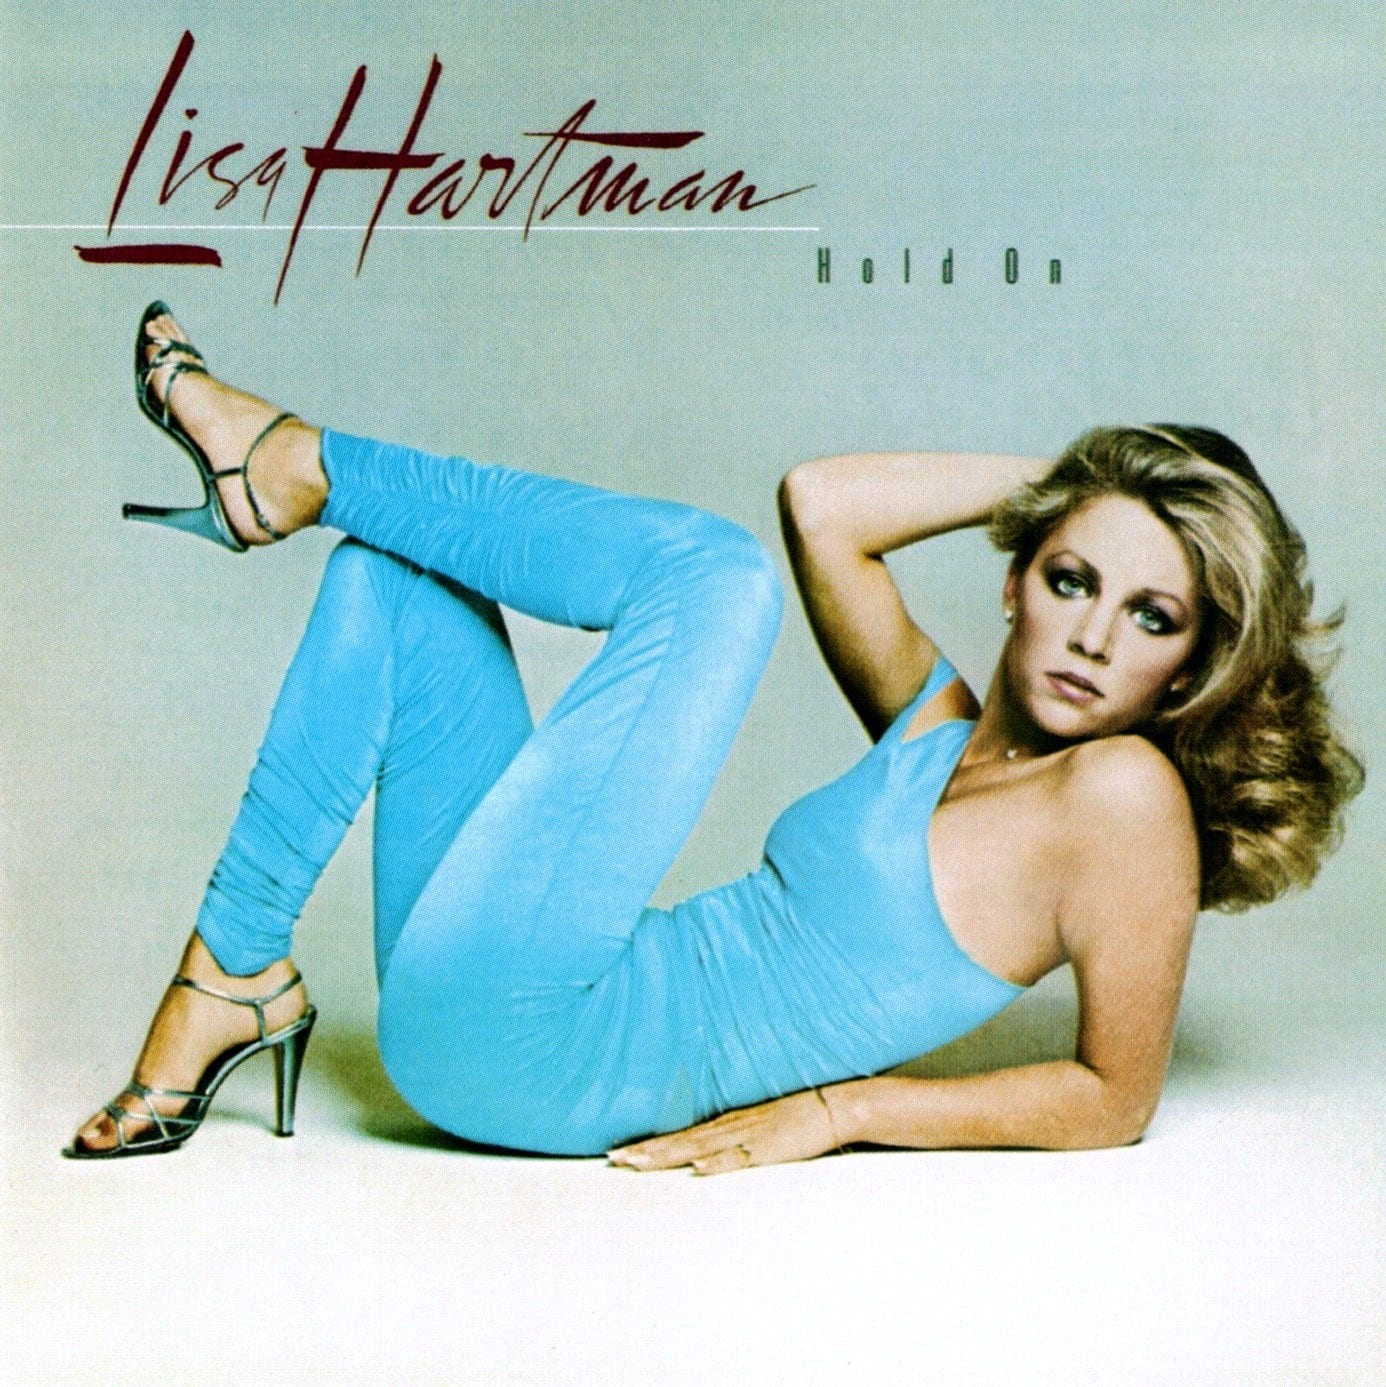 Lisa Hartman - Hold On (EXPANDED EDITION) (1979) CD 9